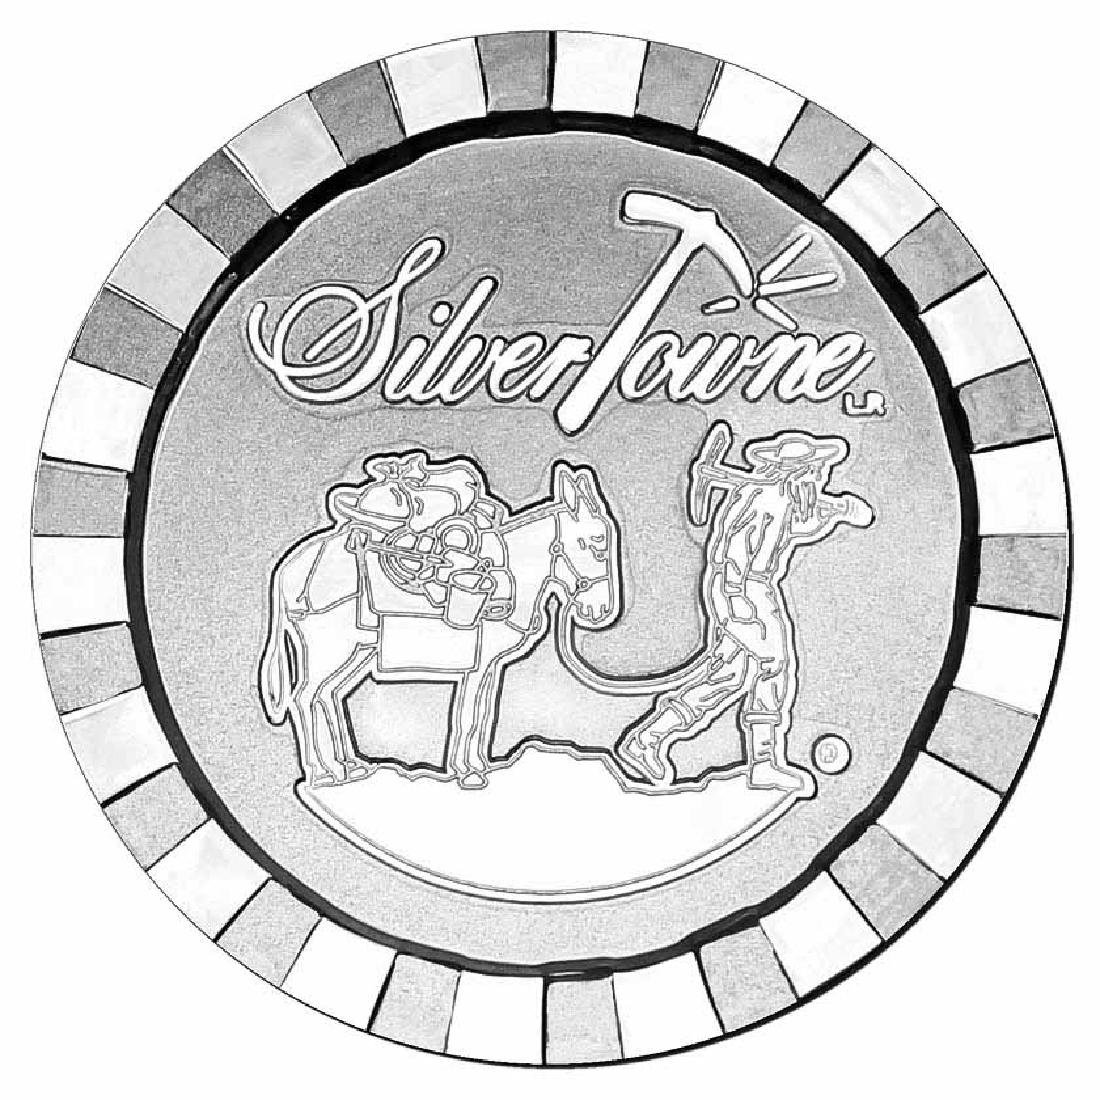 SilverTowne 1 oz Silver Round - Stackable Poker Chip De